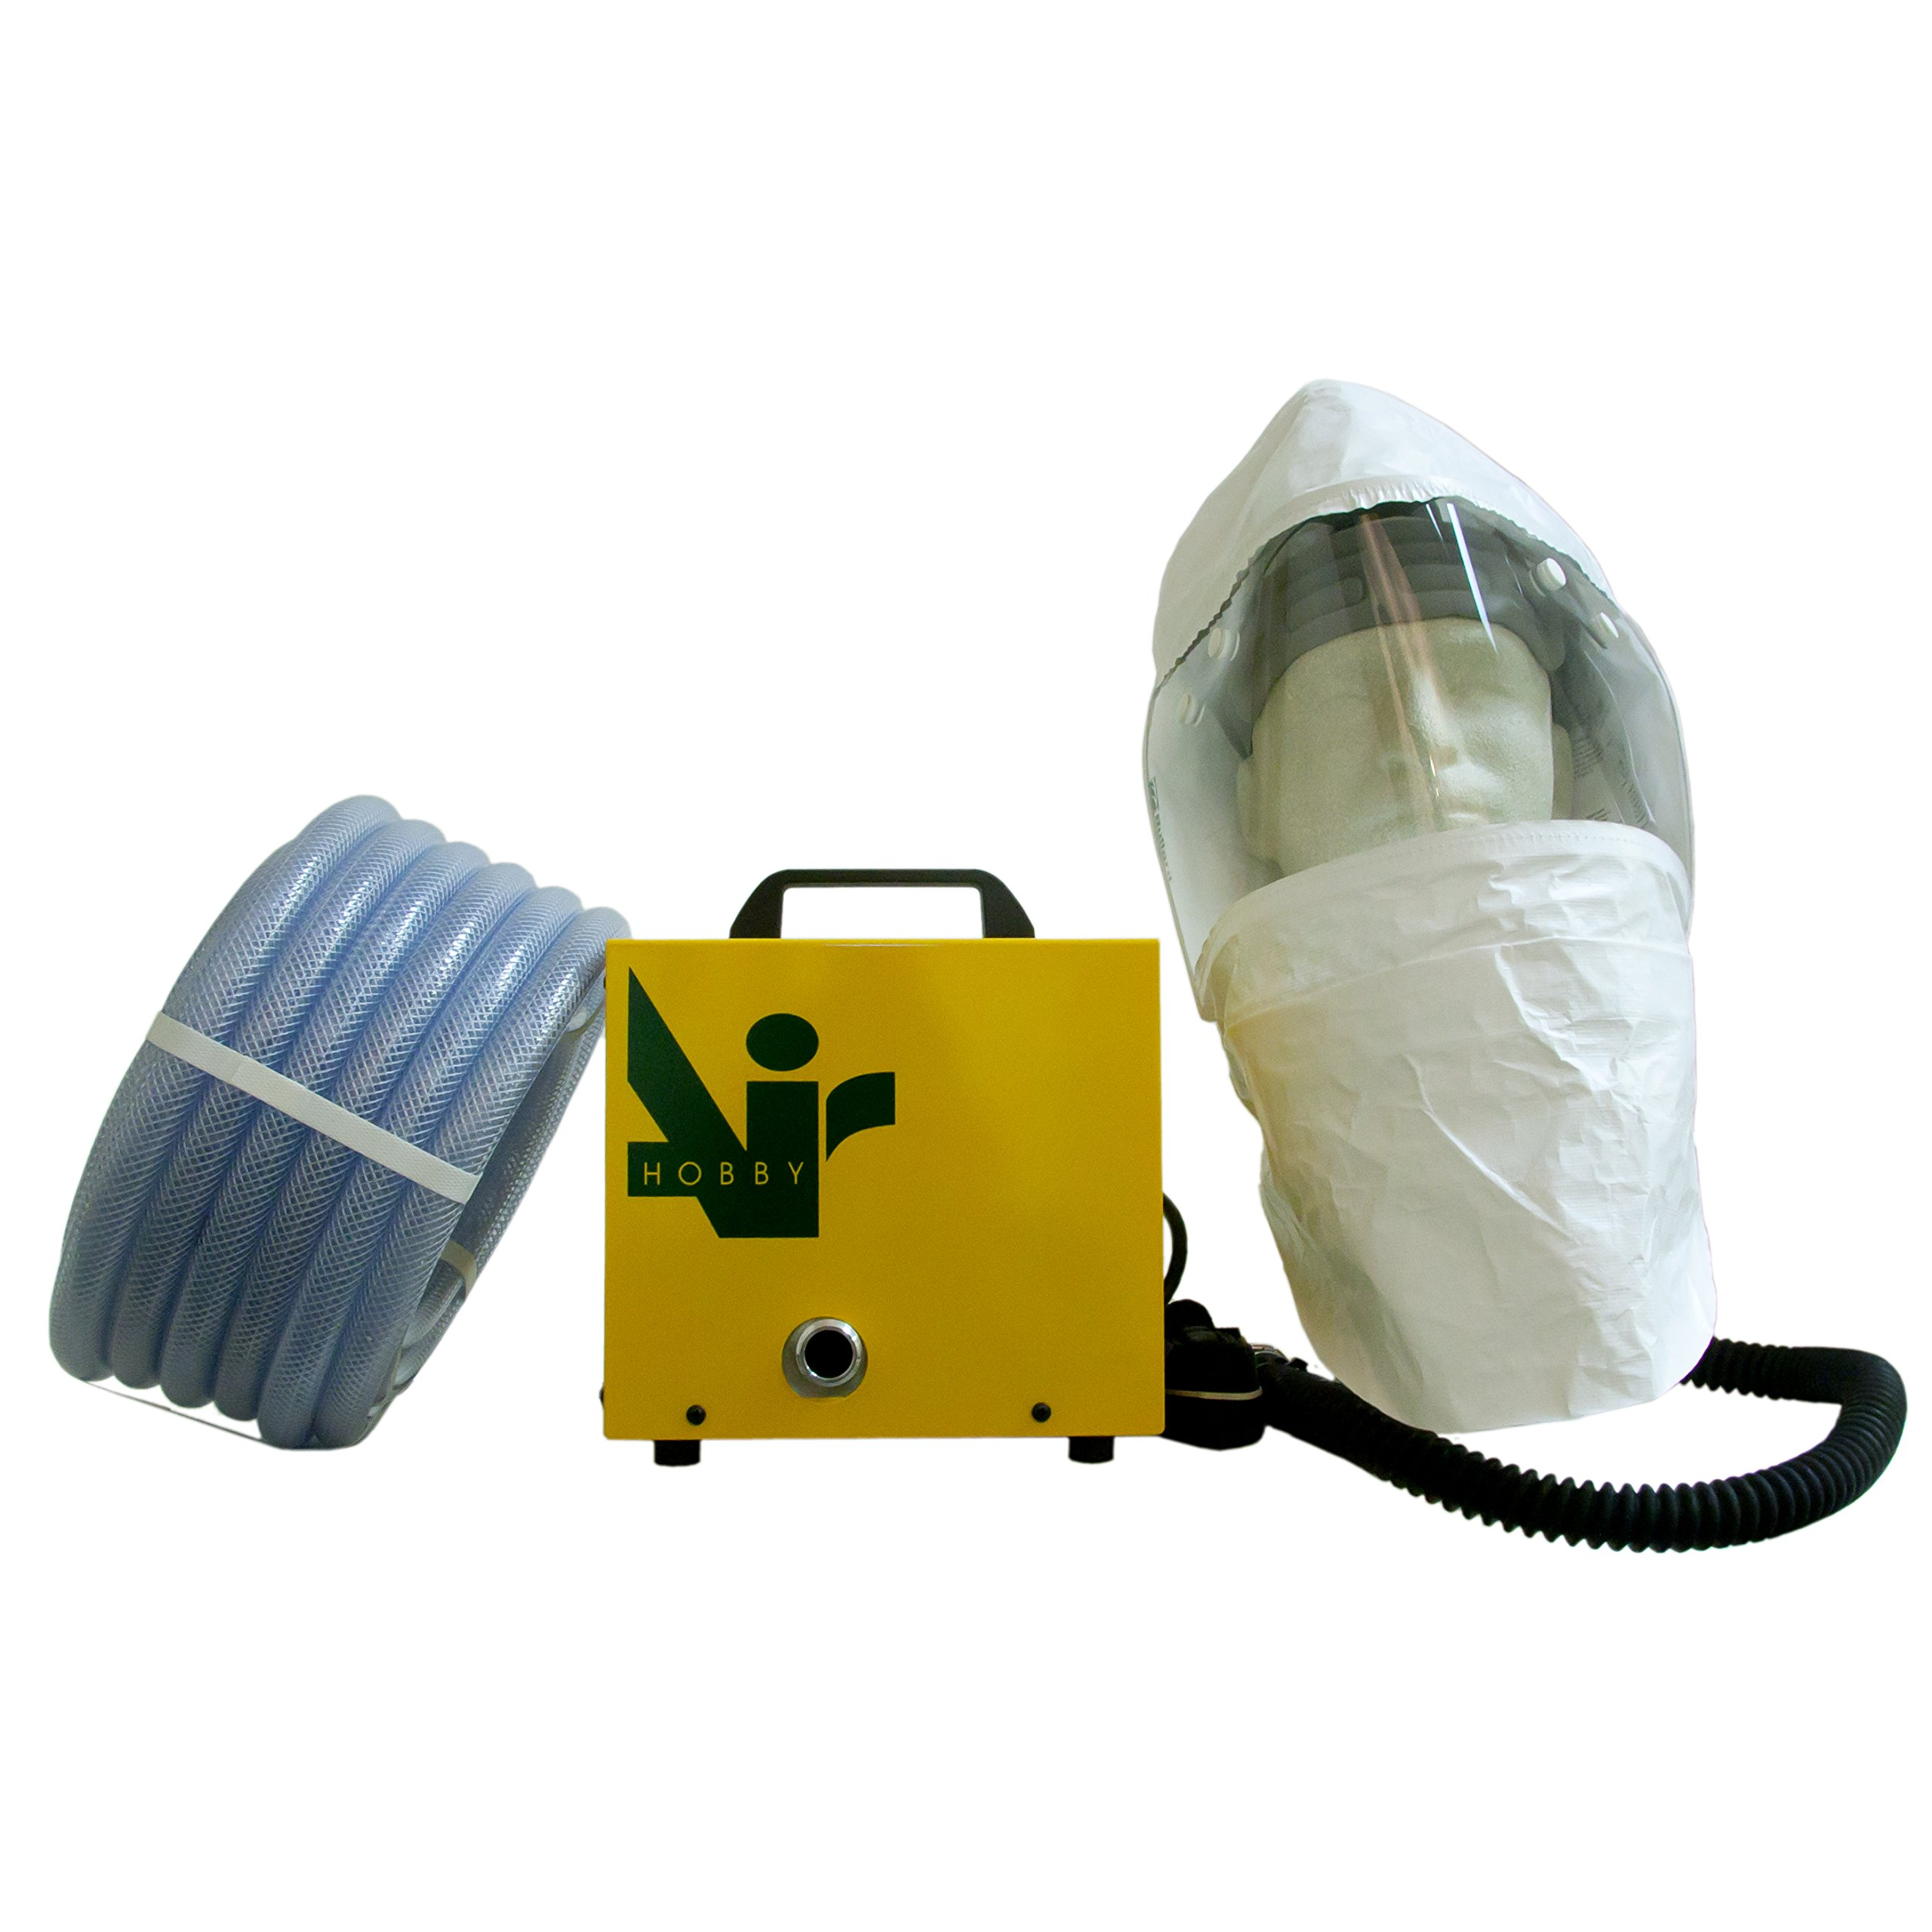 Hobbyair 1 with Air Supplied Painting Hood and 40' of Hose